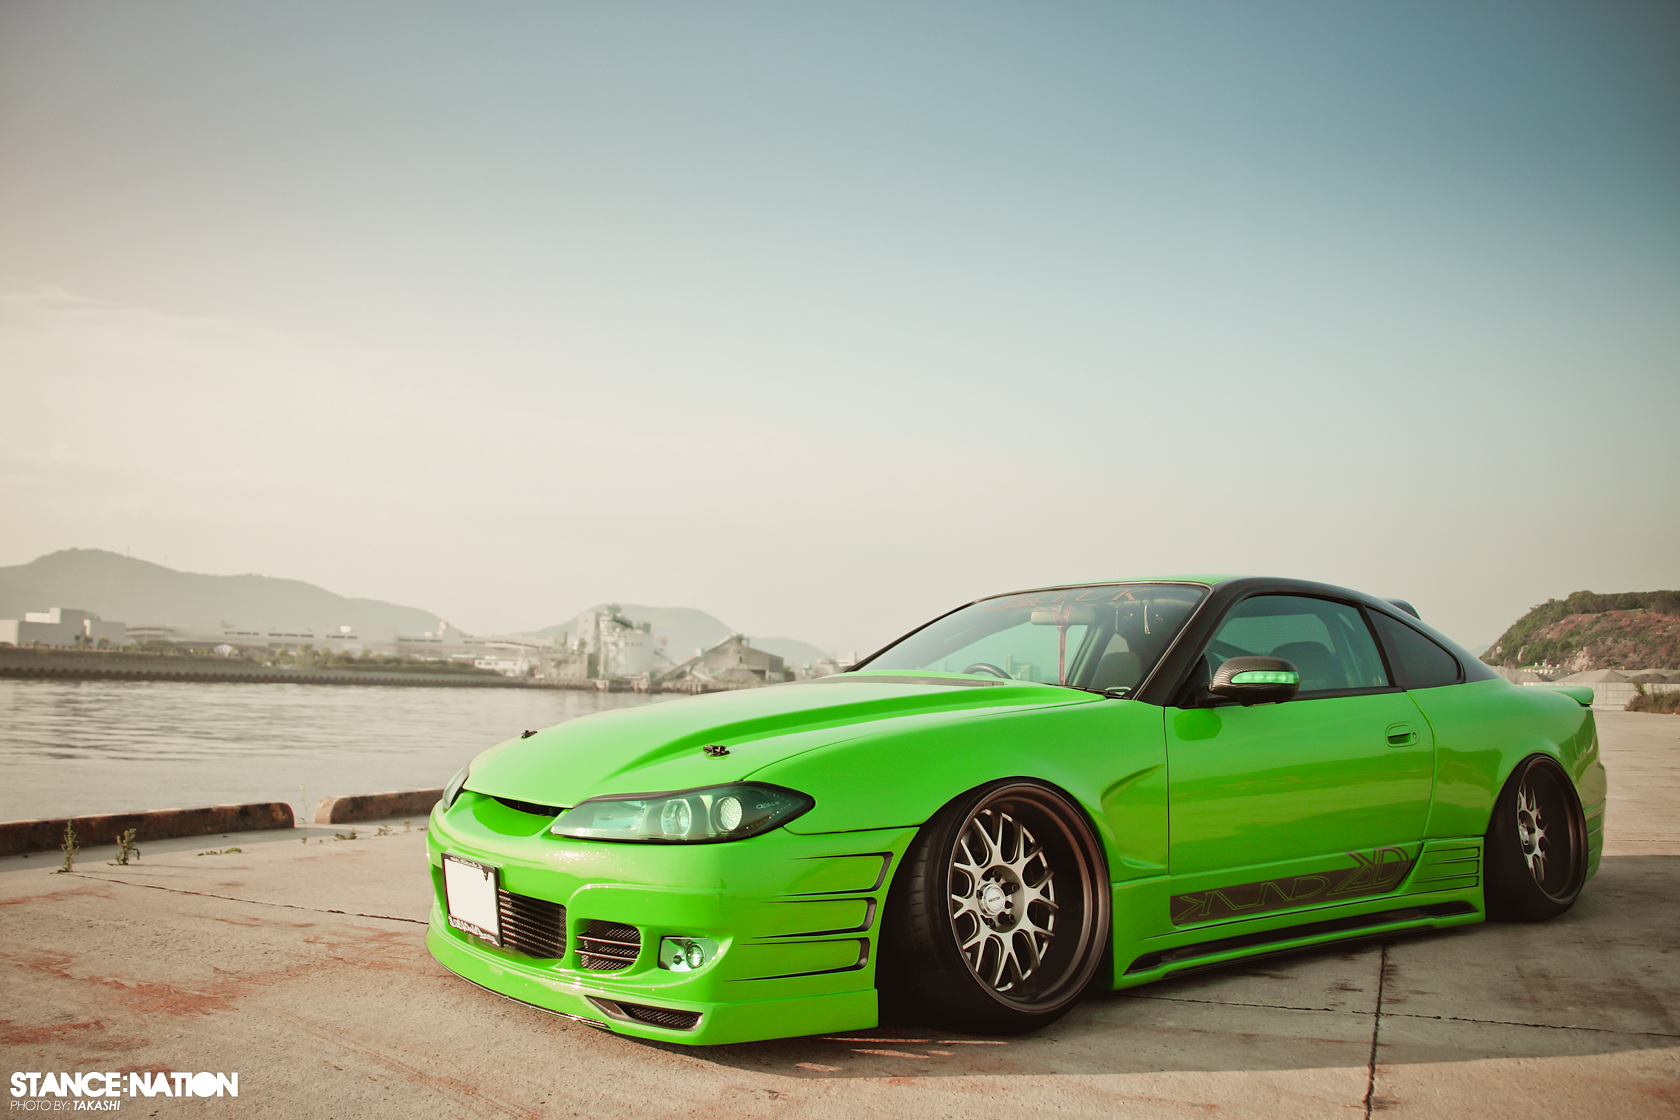 Charmant 27 Best Drift Project Ideas Images On Pinterest | Nissan Silvia, Cars And Silvia  S15